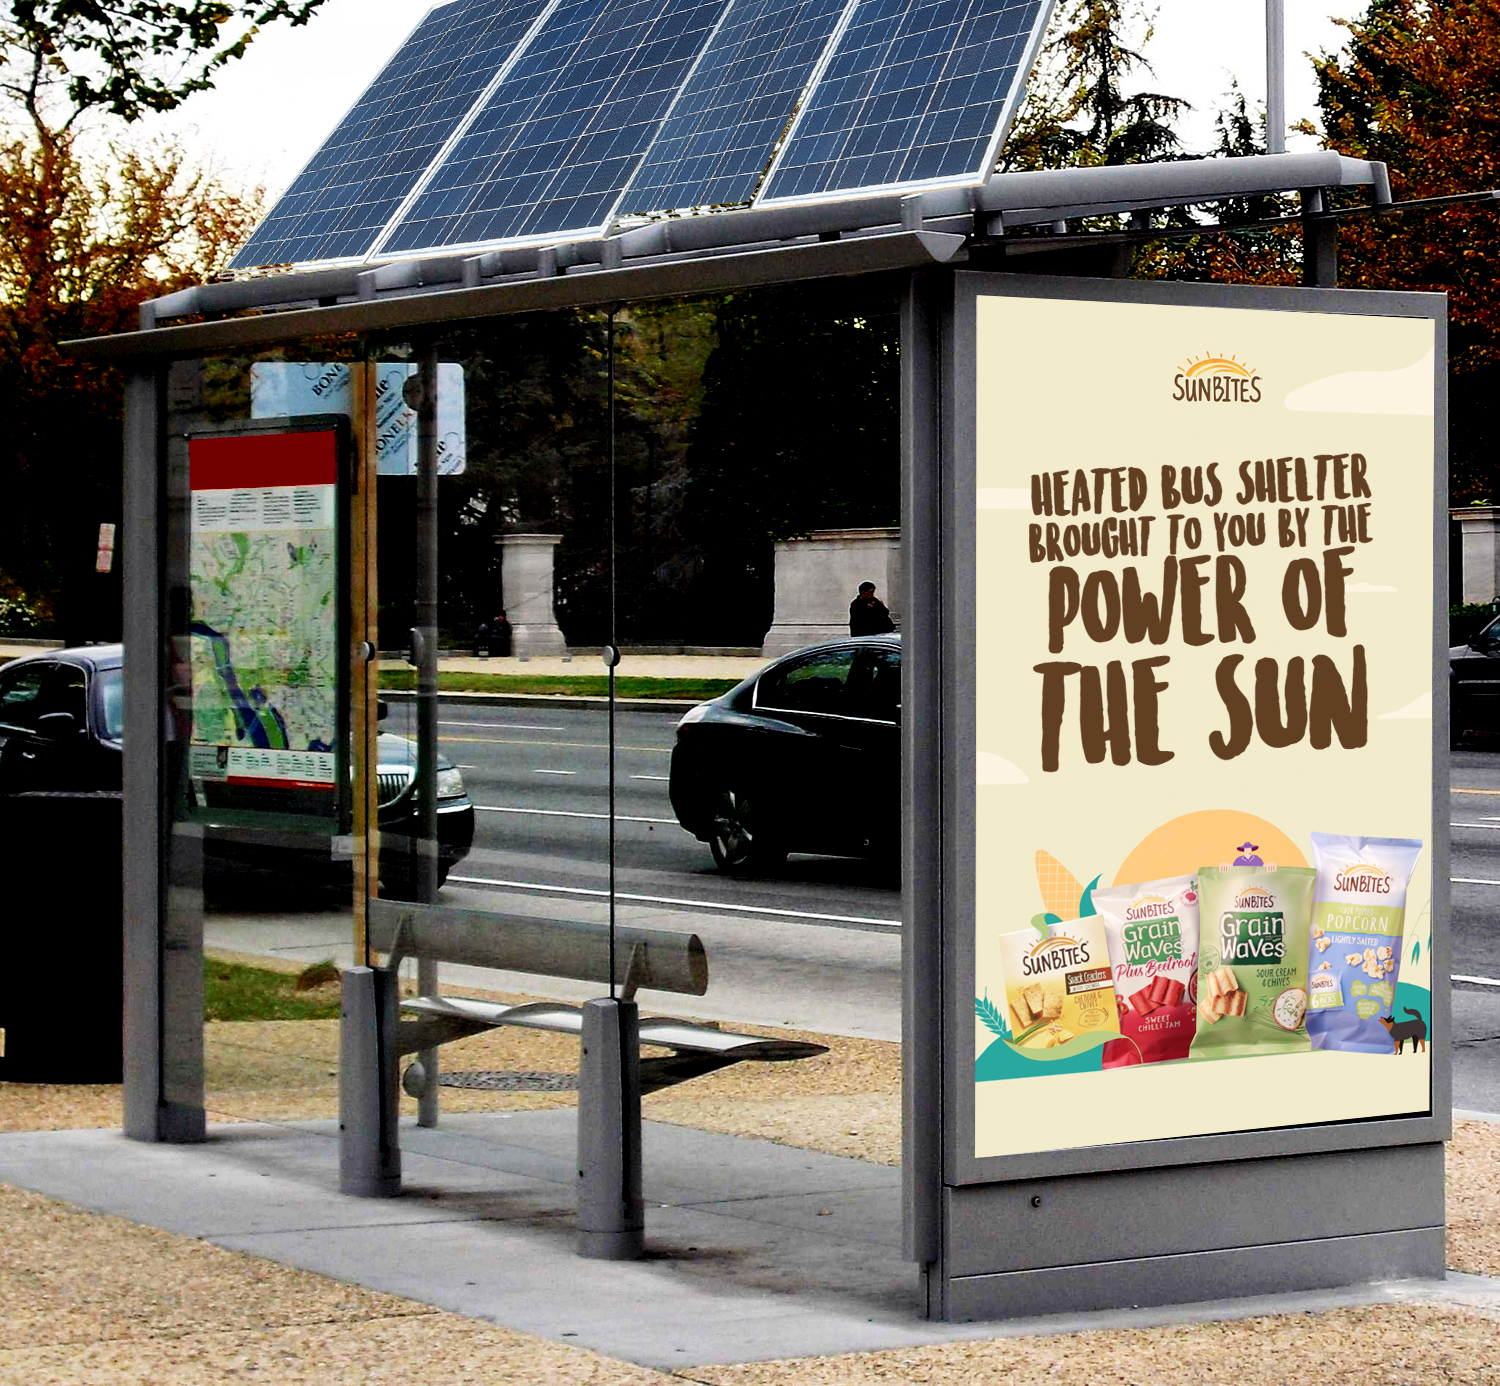 Special Build OOH - Solar panels on the top of bus shelters would collect power during the day for heaters in the evening, representing one of the many reasons Sunbites loves the sun.